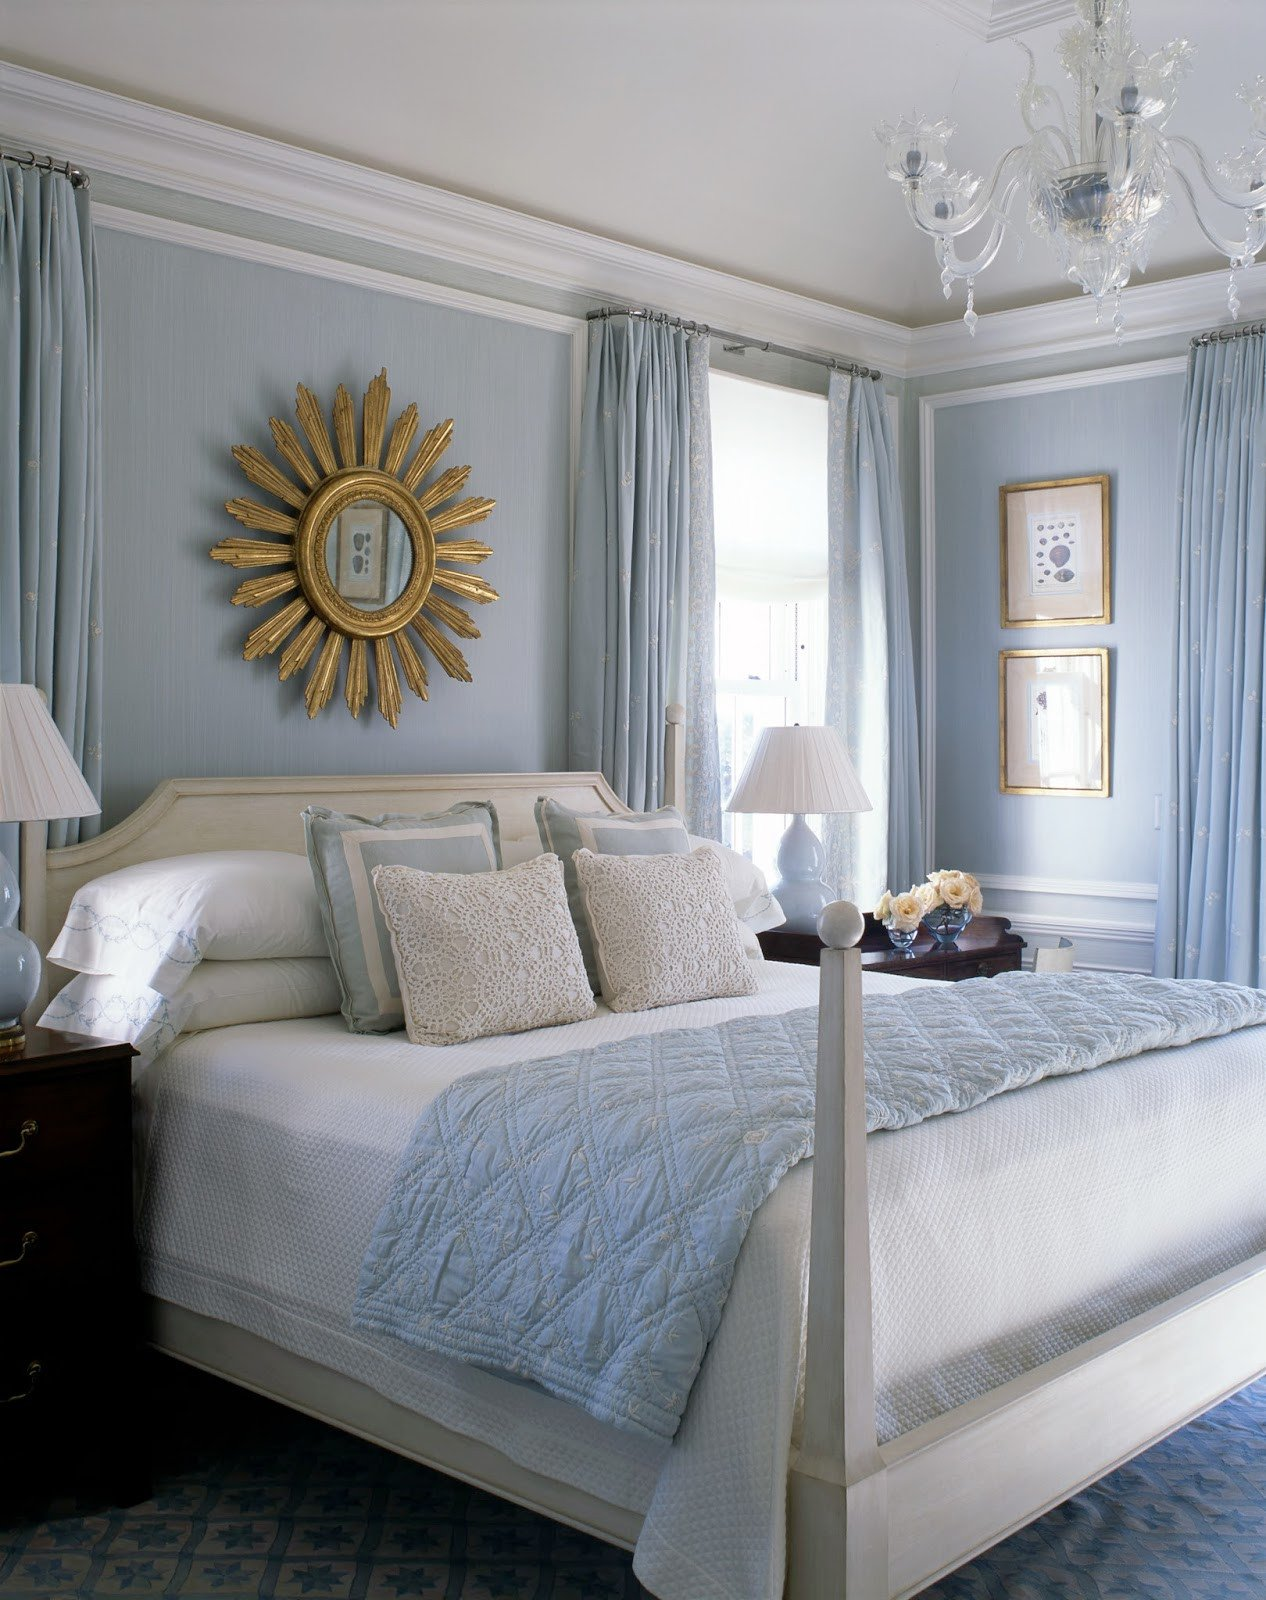 Blue and White Room Decor Fresh A Blue and White Beach House by Phoebe and Jim Howard the Glam Pad